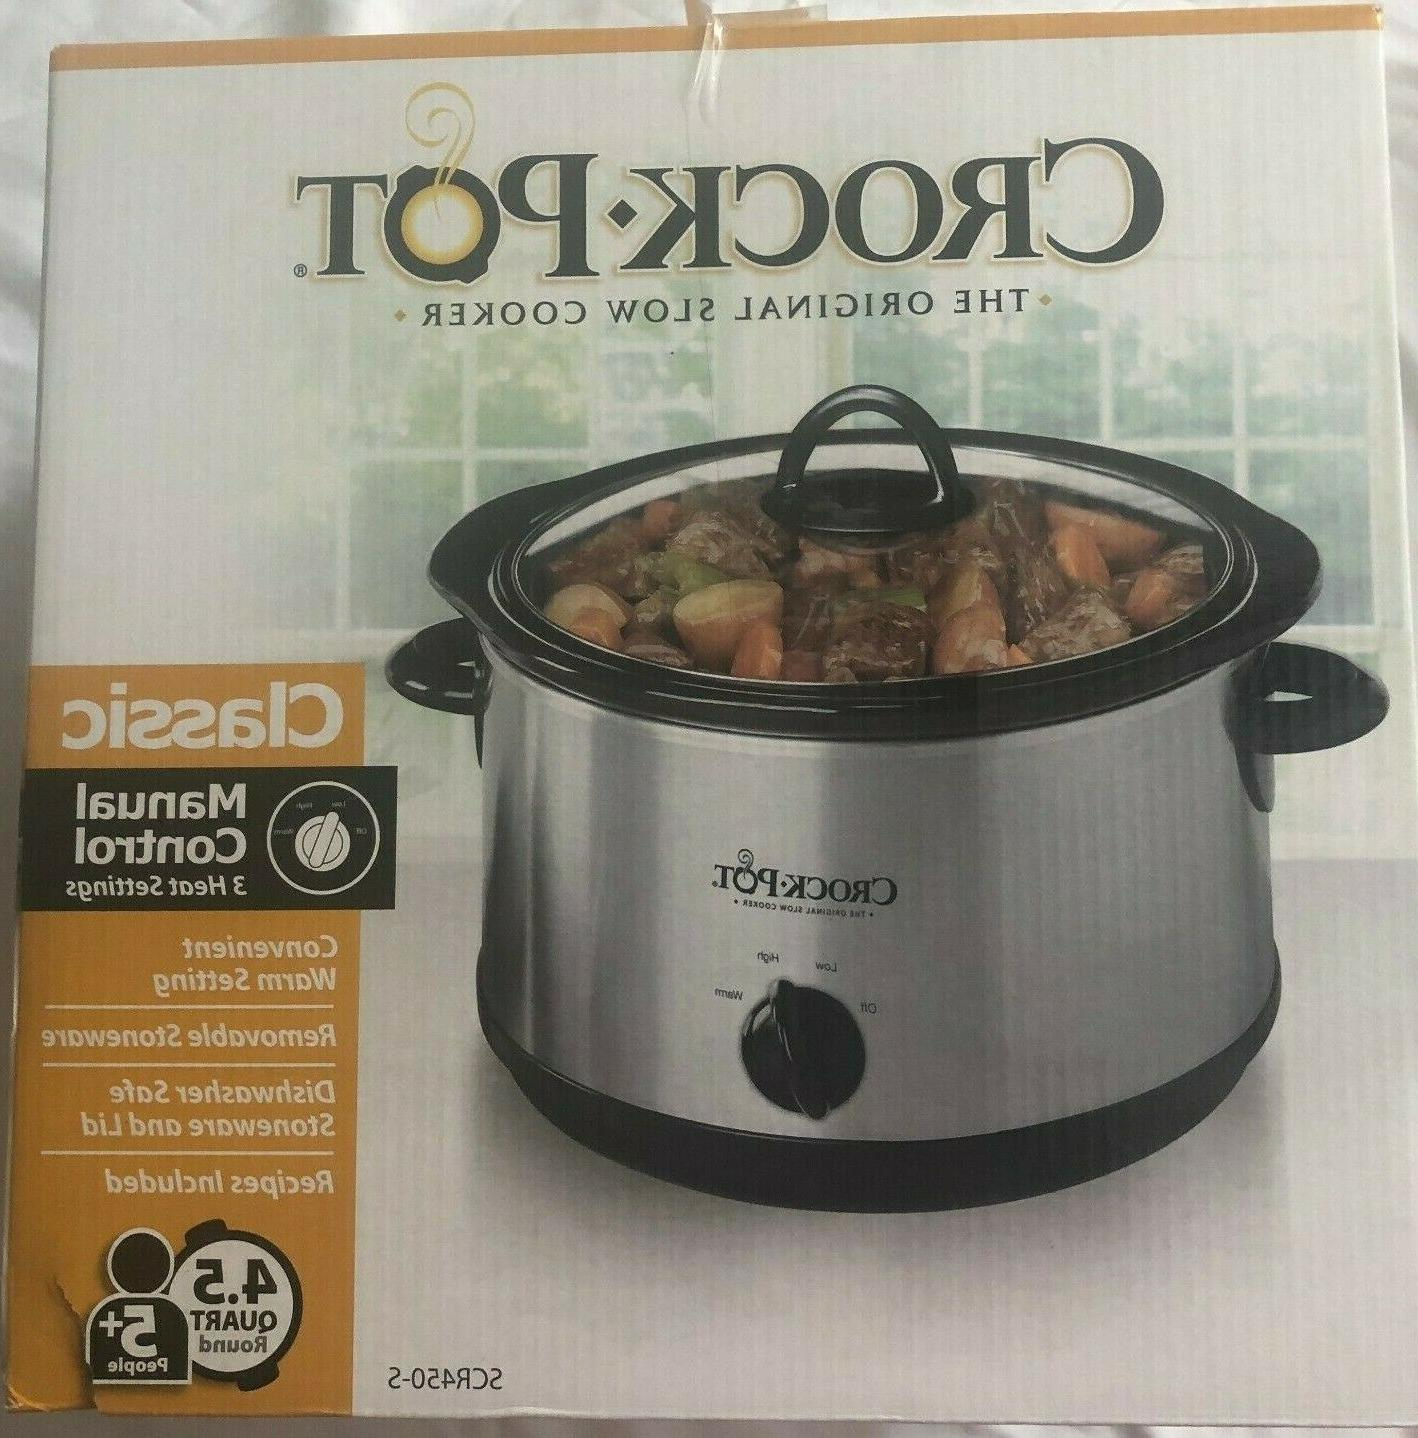 crock pot classic stainless steel manual slow